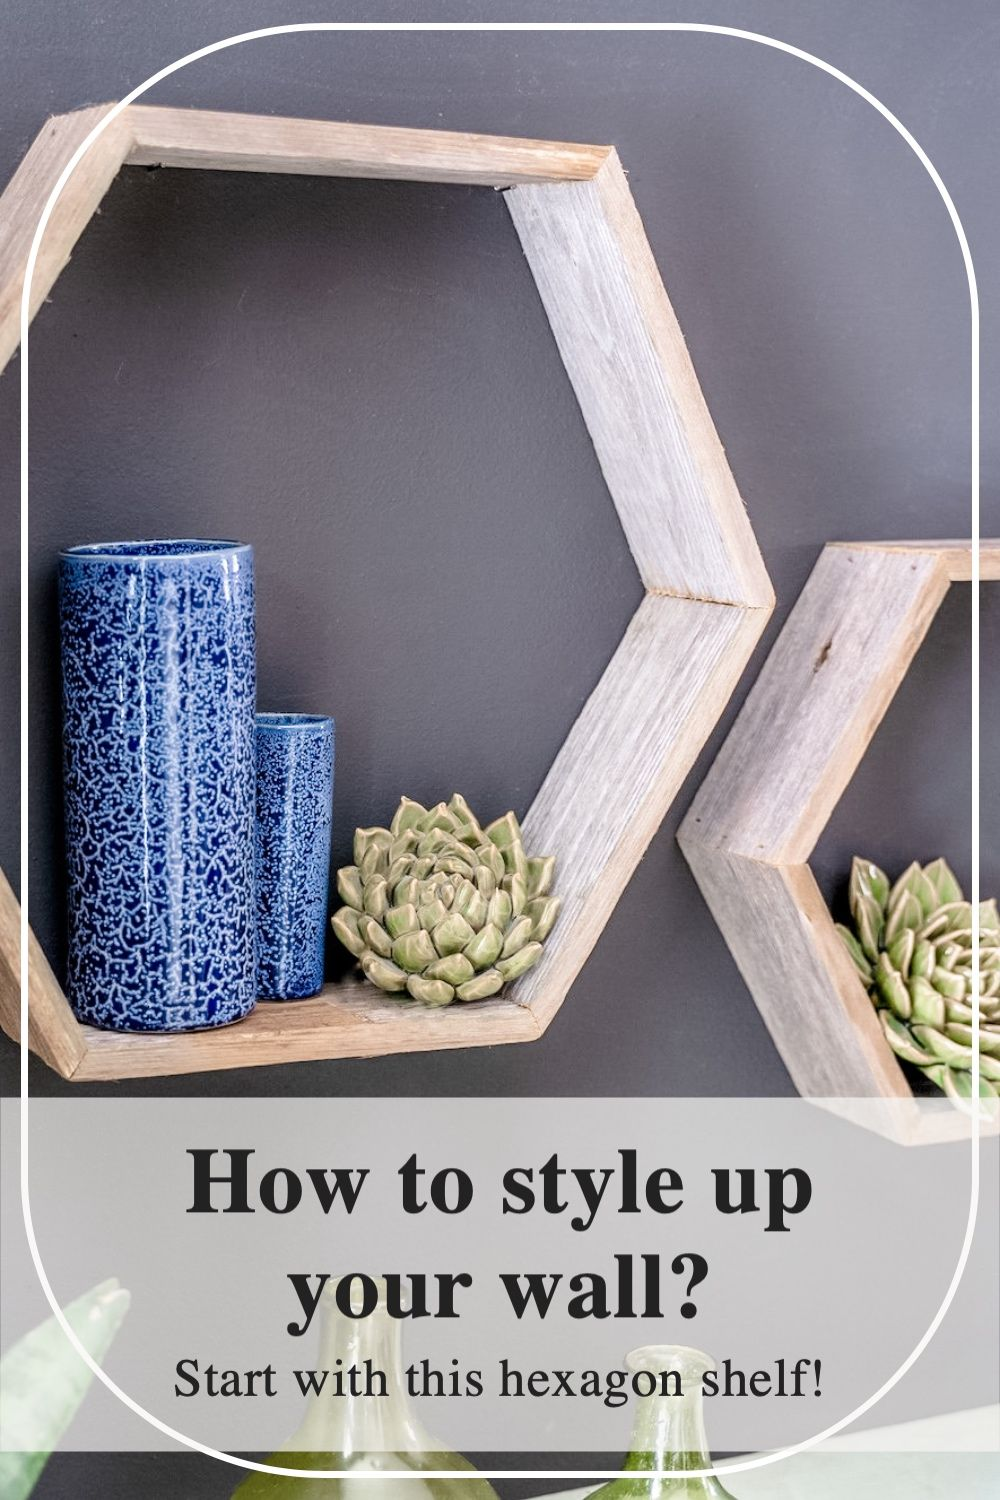 Photo of How to style up your wall?